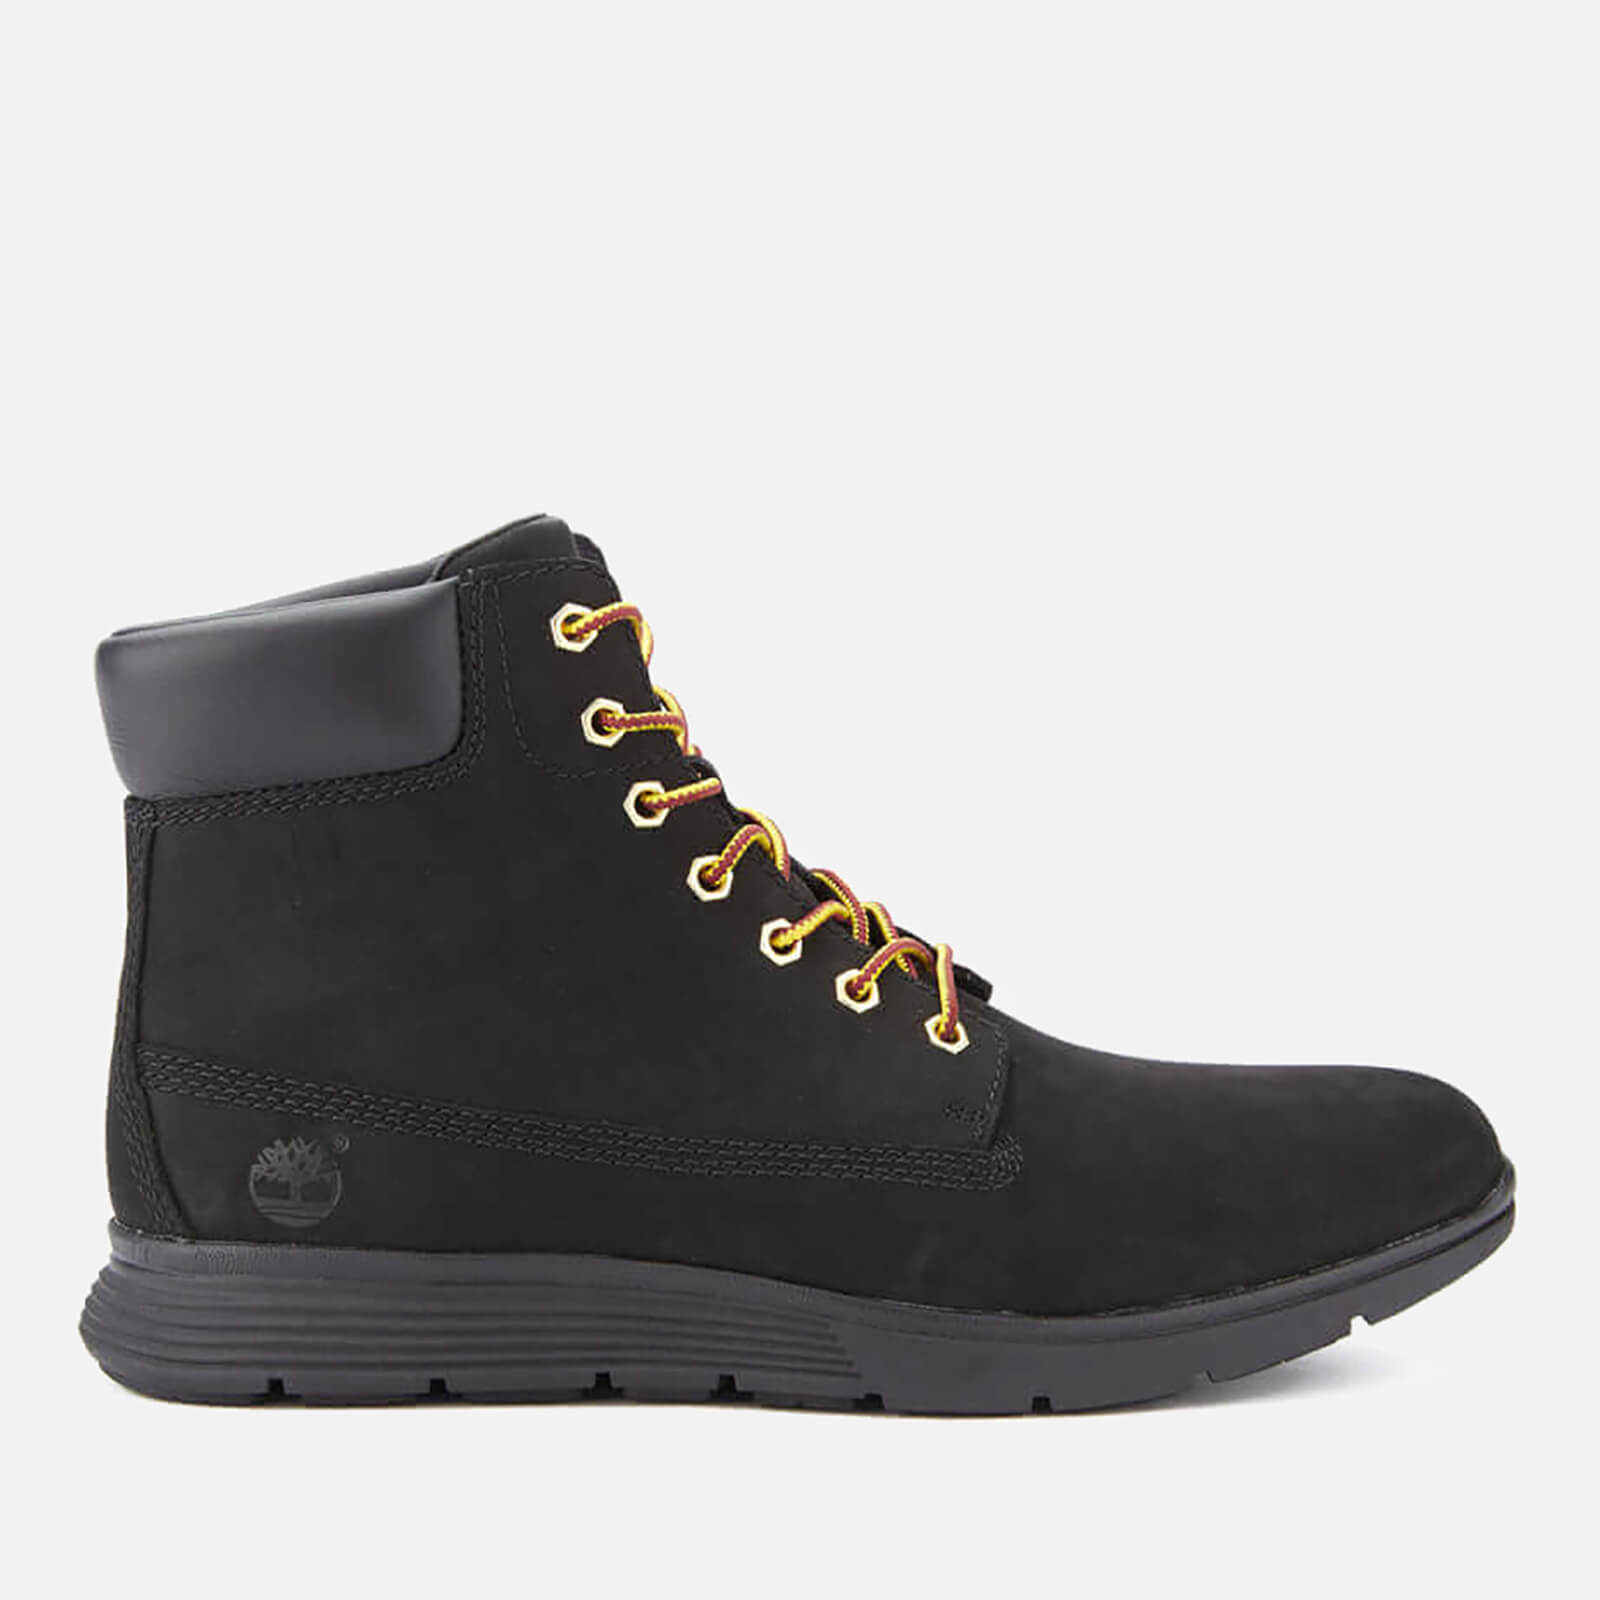 Timberland Men's Killington 6 Inch Boots Black Nubuck